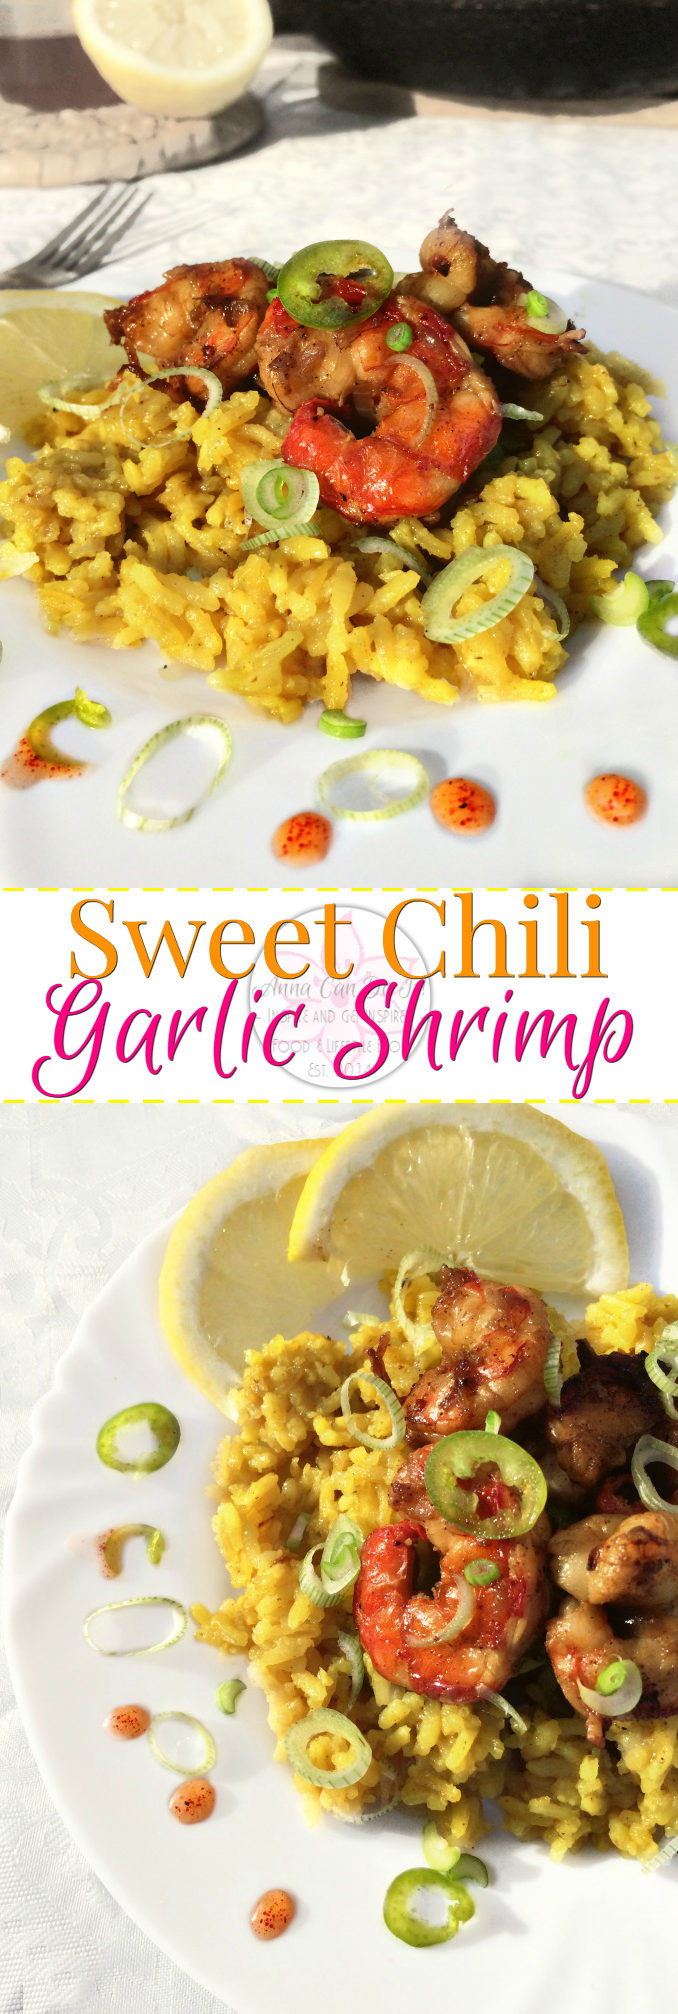 Sweet Chili Garlic Shrimp - Anna Can Do It! * Sweet Chili Garlic Shrimp is so easy and quick, heavenly delicious and full of flavors. The sweet chili sauce add the perfect hotness to the garlic lemon shrimps.